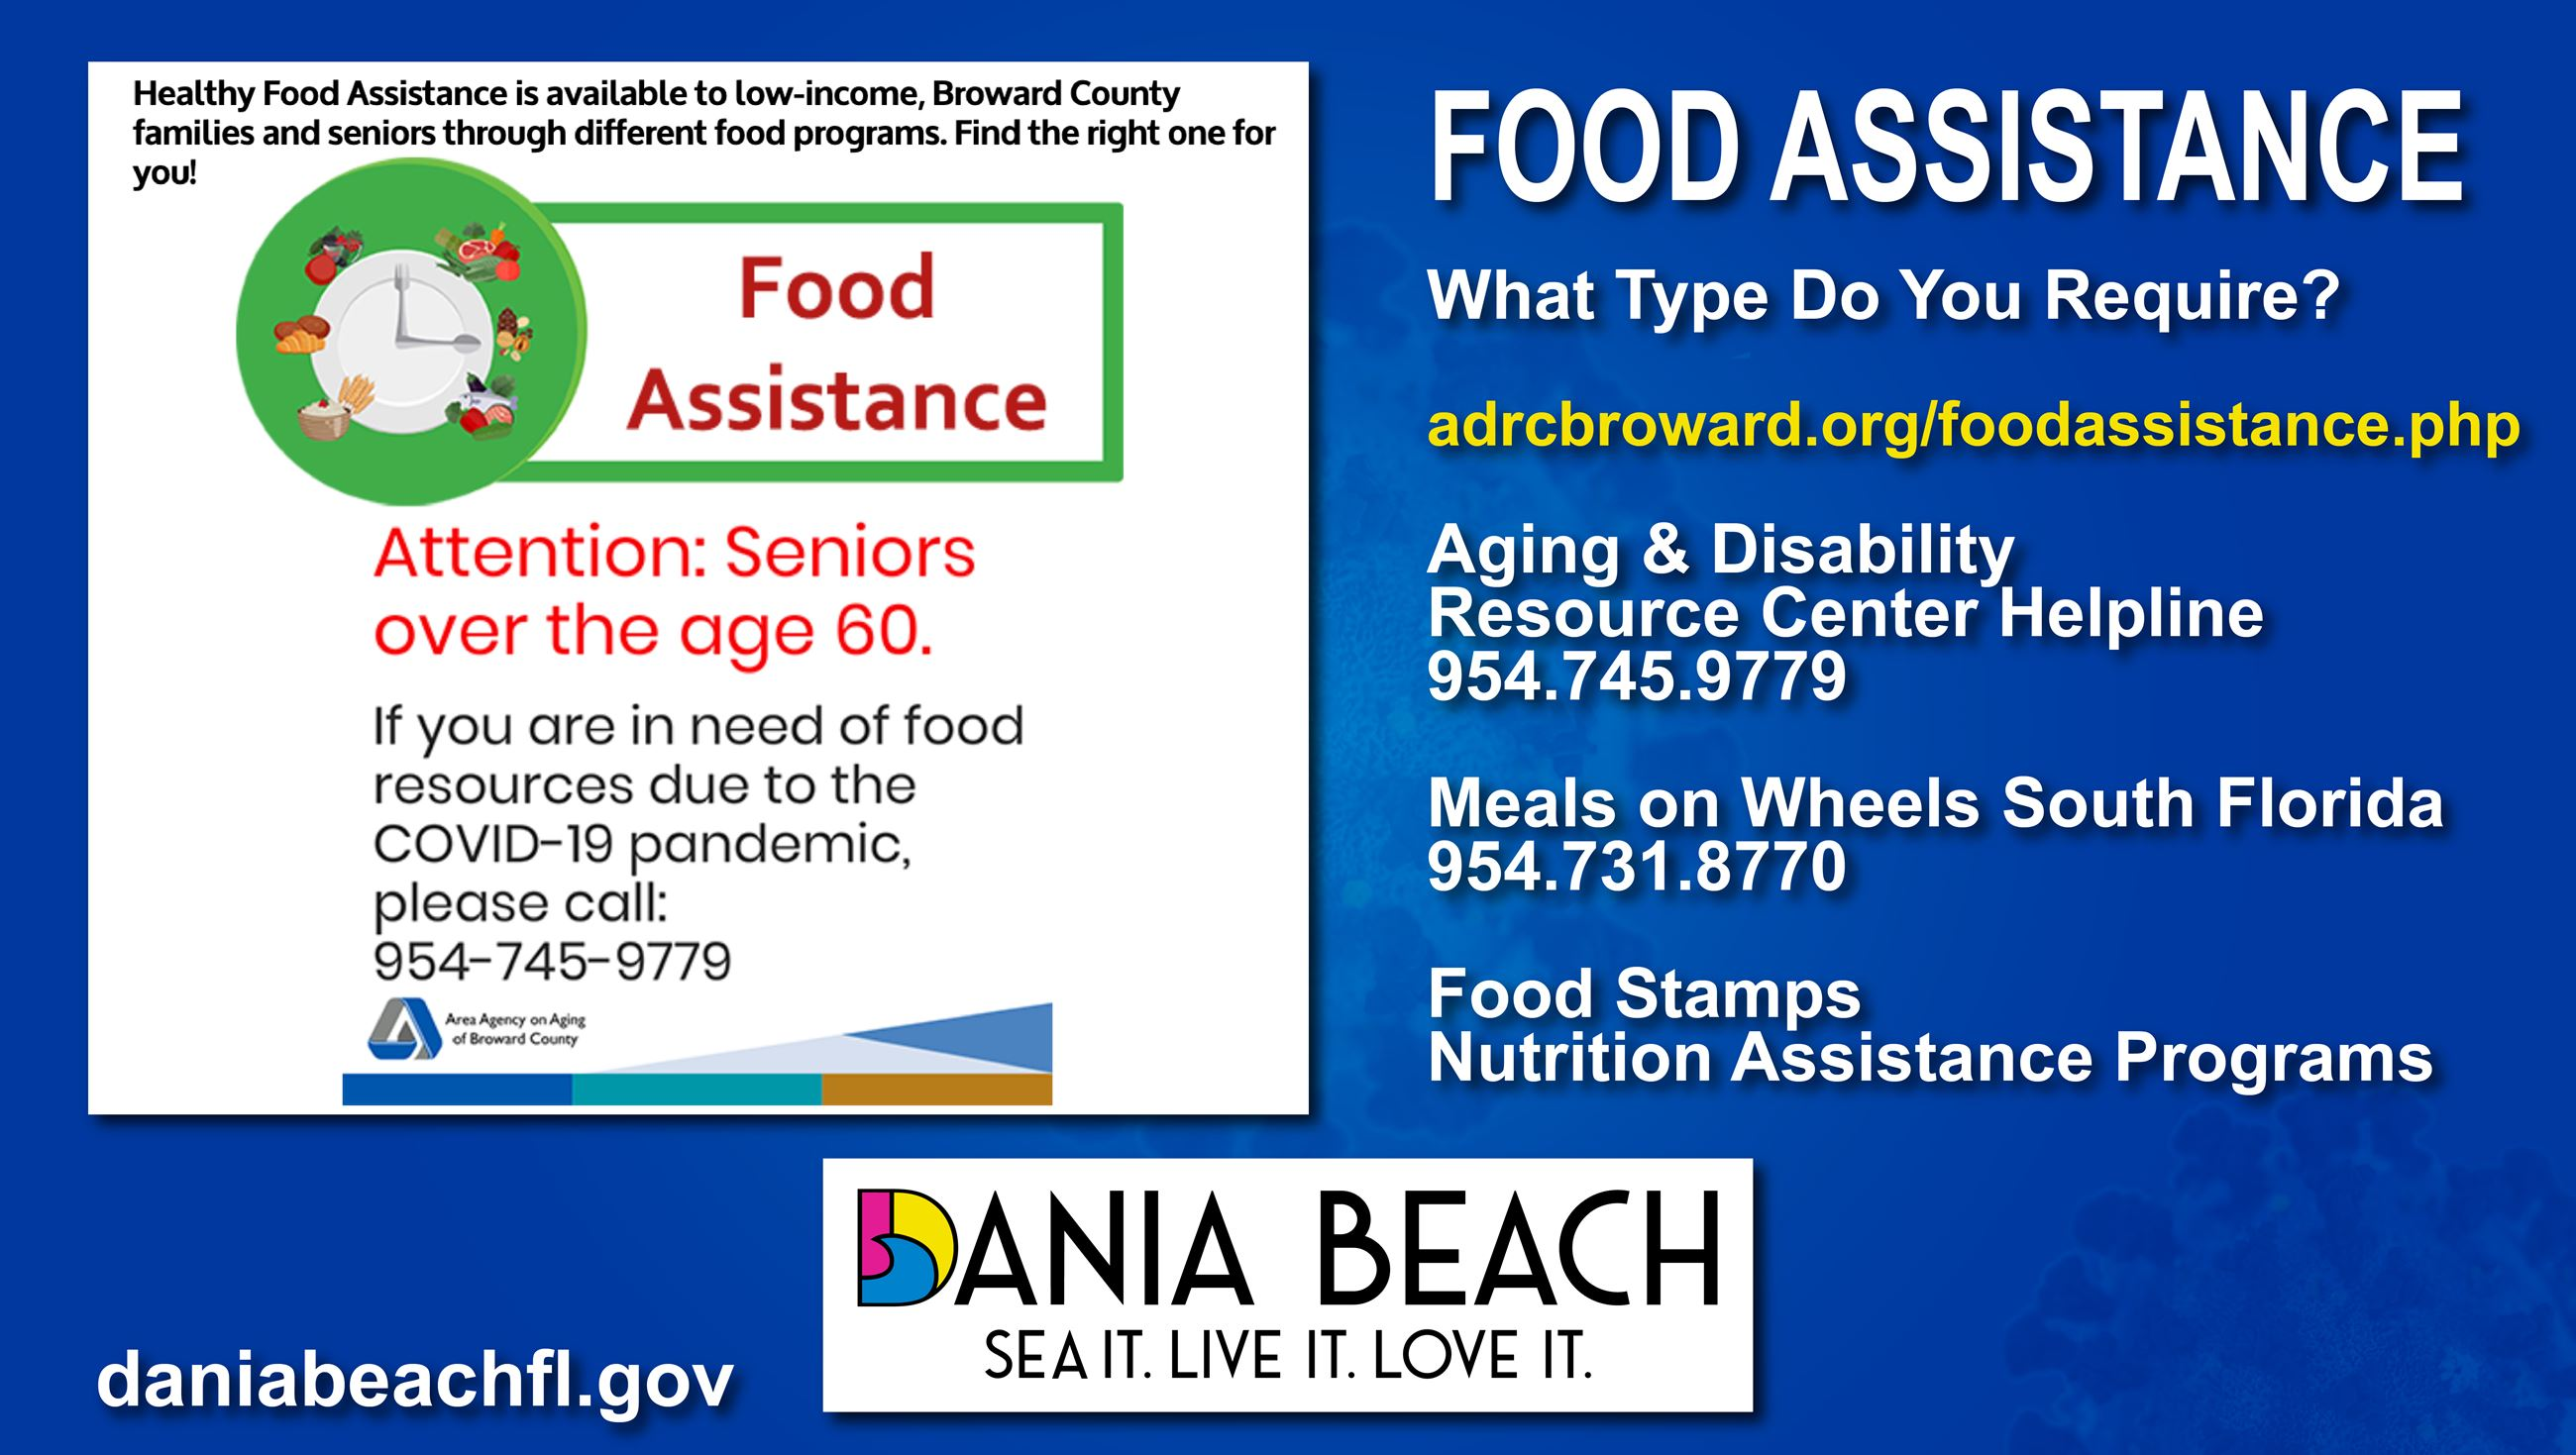 Dania Beach Info - food Assistance